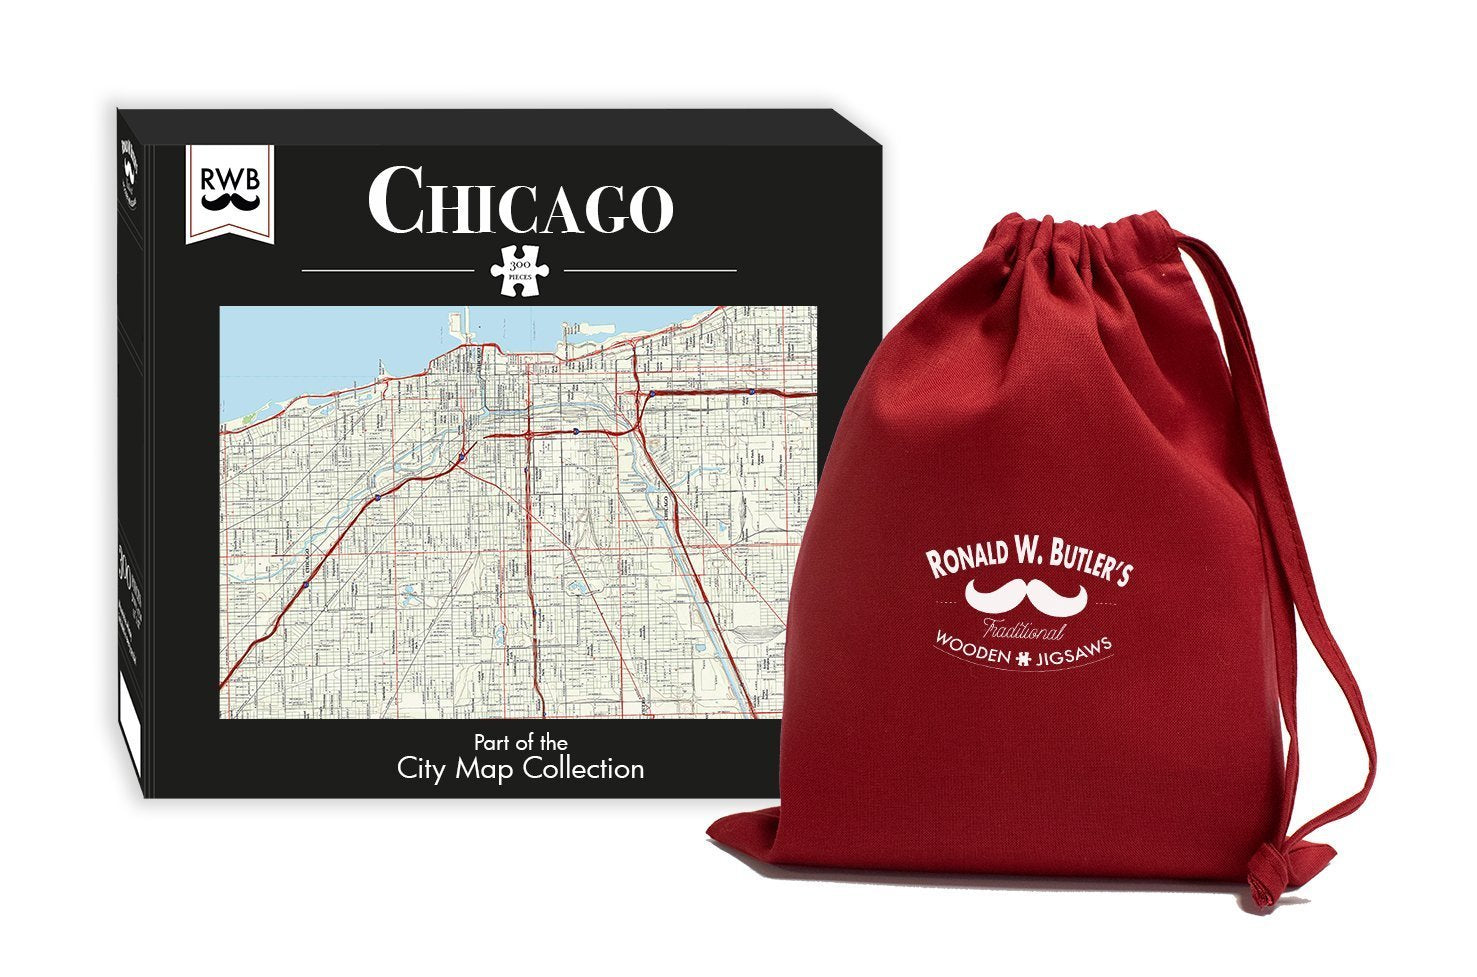 Chicago City Map Jigsaw Puzzle - 300 Piece Wooden Jigsaw Puzzle